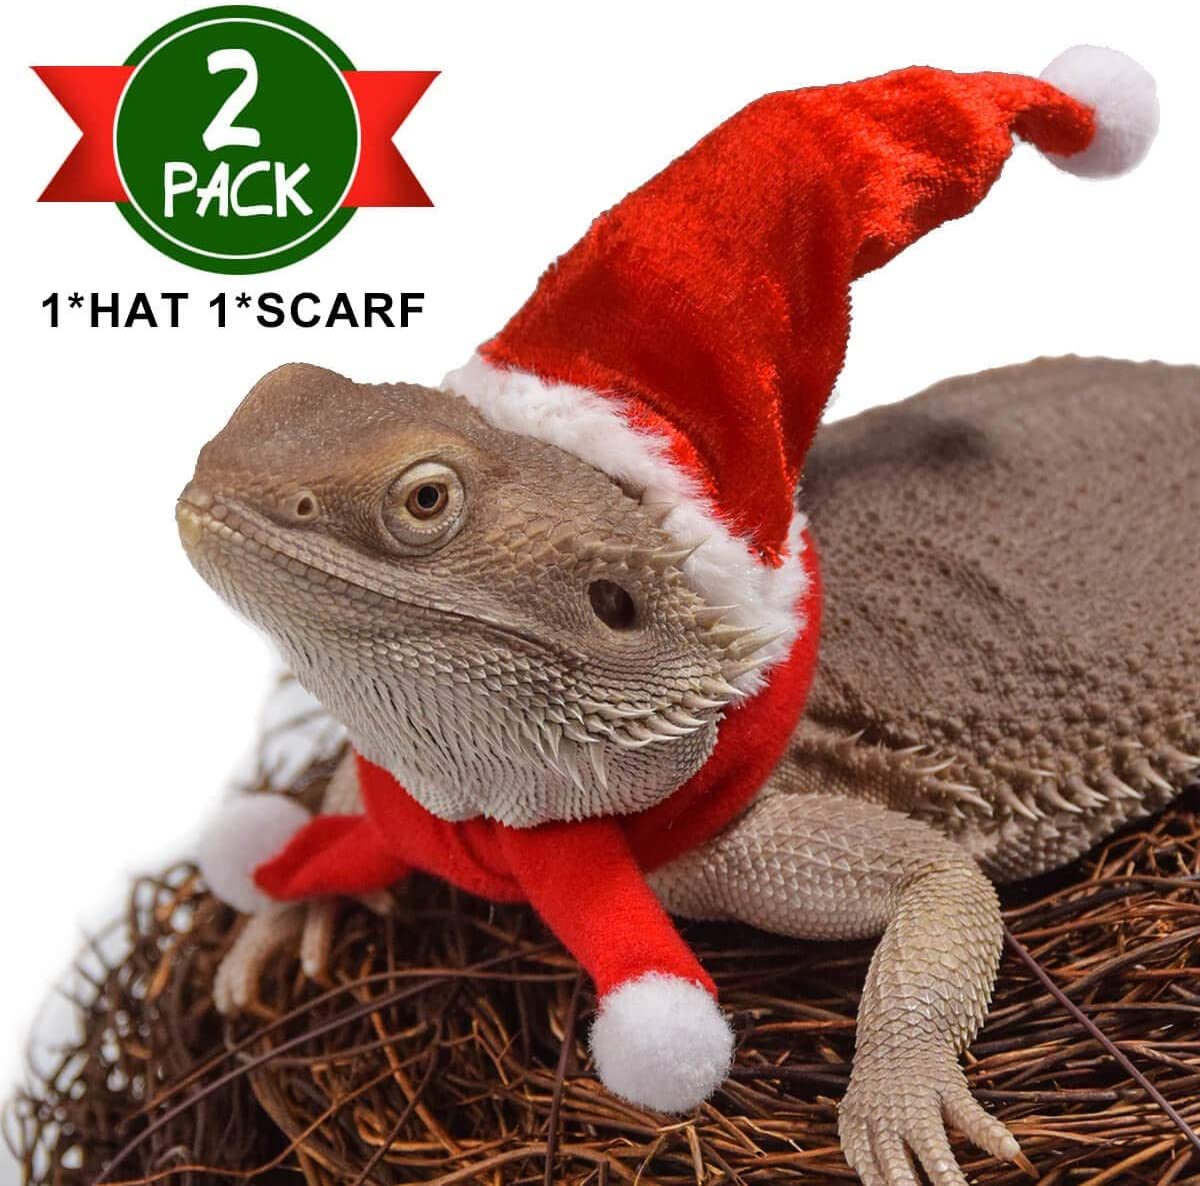 NEW DRAGON  SIZE FATHER CHRISTMAS OUTFIT